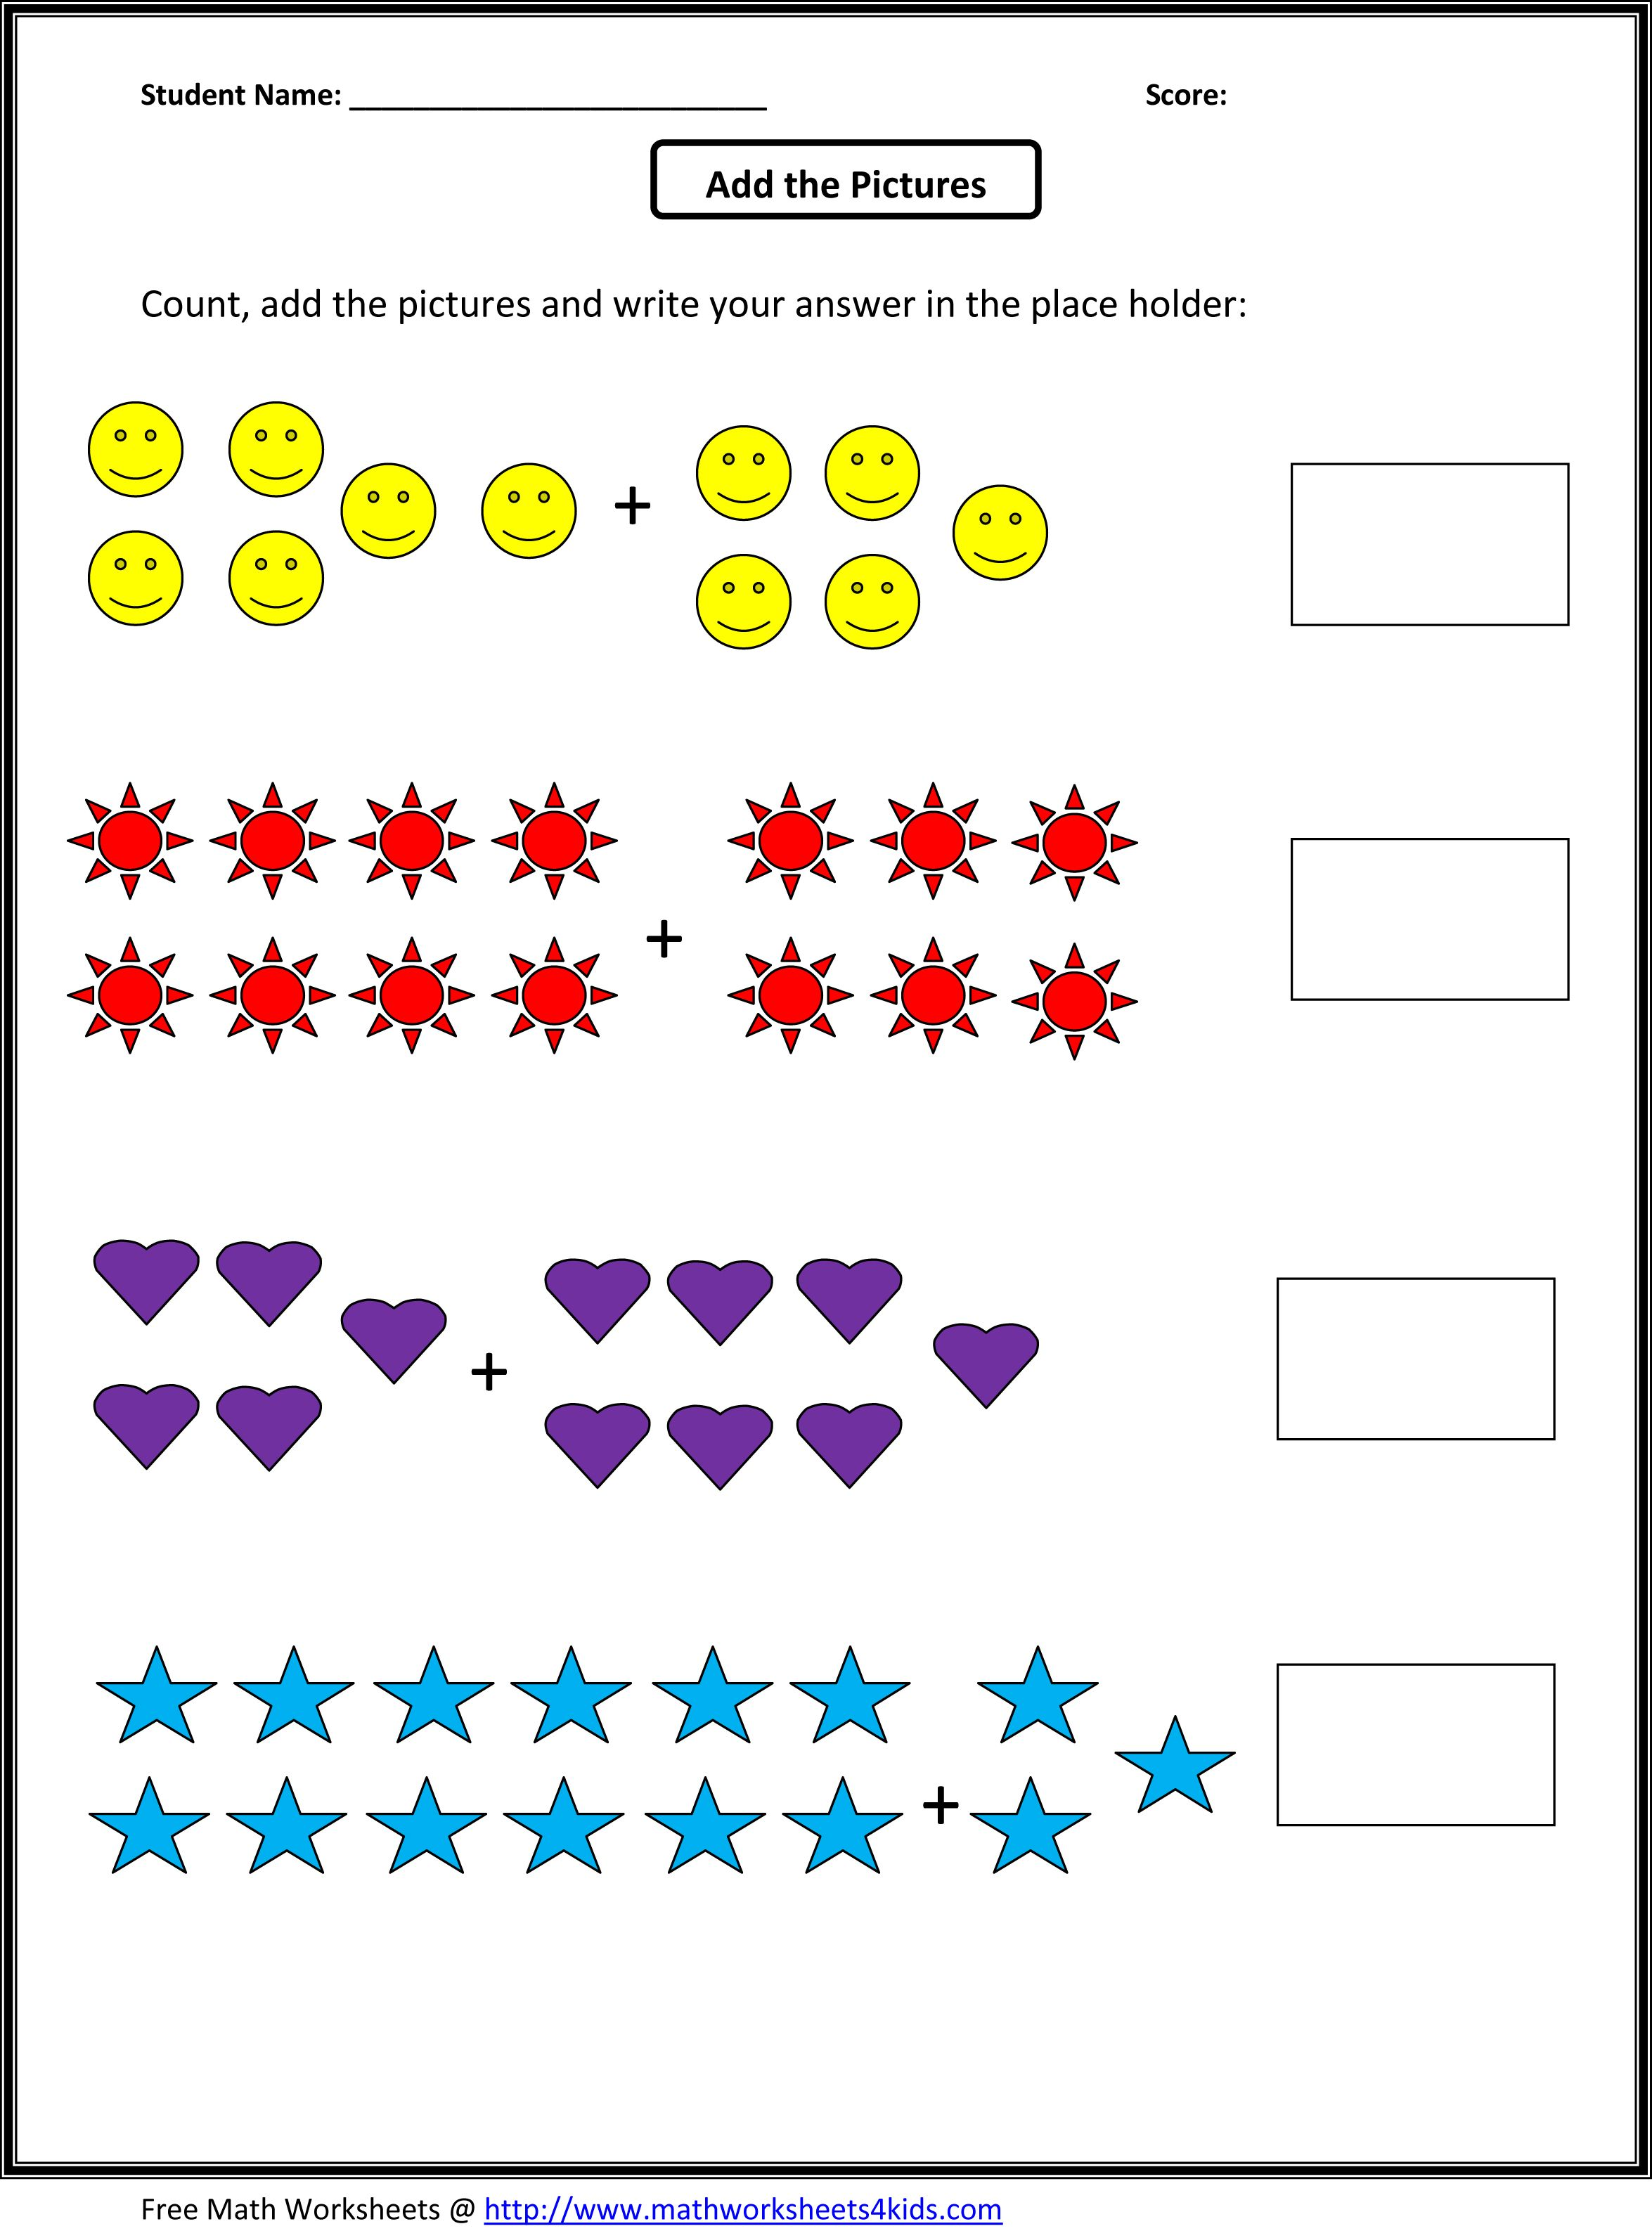 Aldiablosus  Outstanding Worksheet For Math Grade   Coffemix With Entrancing  Images About School On Pinterest  Mental Maths Worksheets  With Appealing Common Core Worksheets For First Grade Also Th Grade Worksheets Math In Addition Canada Worksheets And Math Worksheets Free Printable As Well As Place Value Worksheet Th Grade Additionally Oregon Child Support Worksheet From Coffemixcom With Aldiablosus  Entrancing Worksheet For Math Grade   Coffemix With Appealing  Images About School On Pinterest  Mental Maths Worksheets  And Outstanding Common Core Worksheets For First Grade Also Th Grade Worksheets Math In Addition Canada Worksheets From Coffemixcom